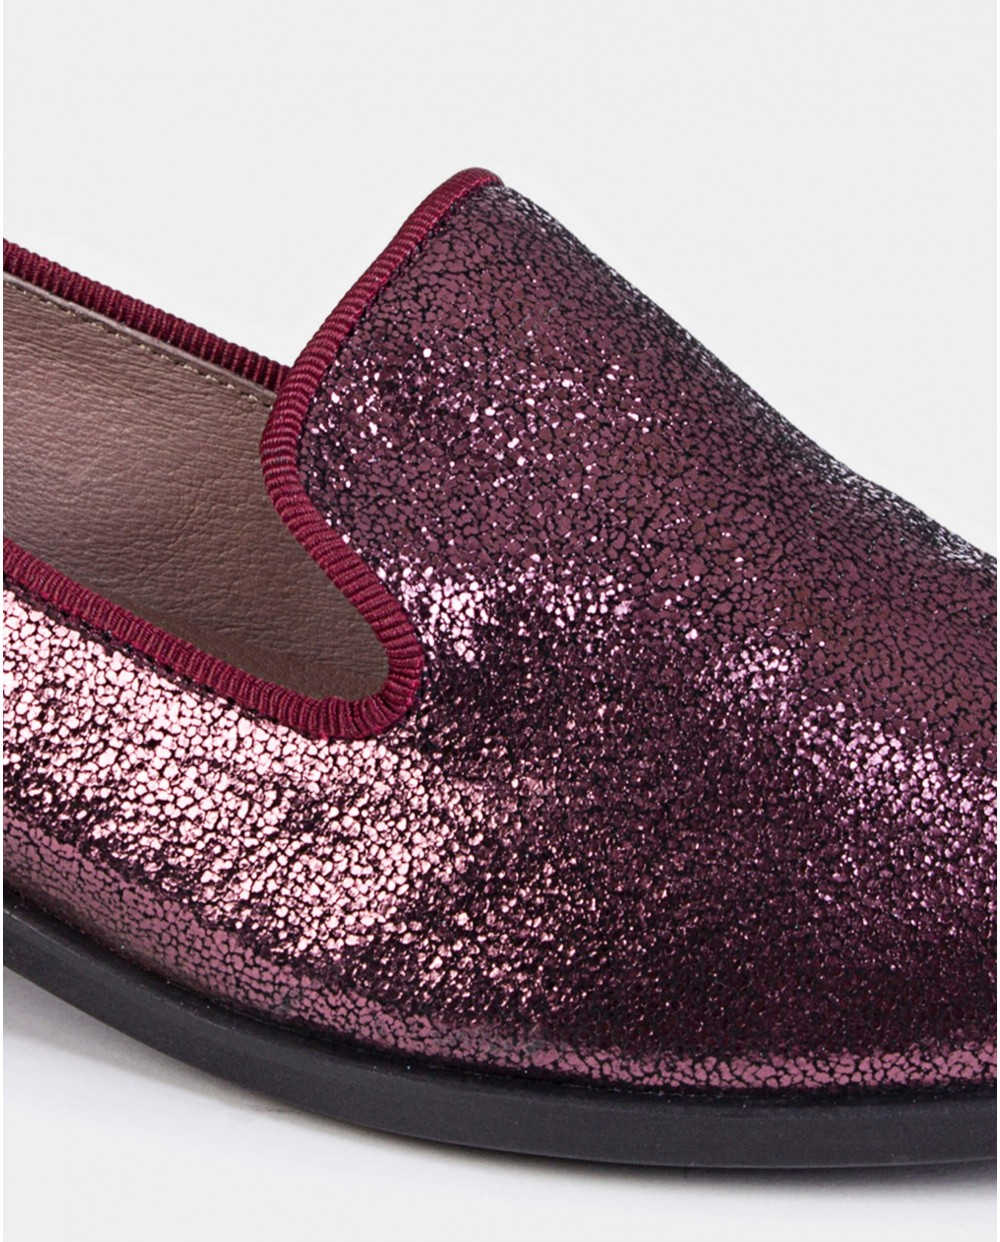 Fantasy leather loafers